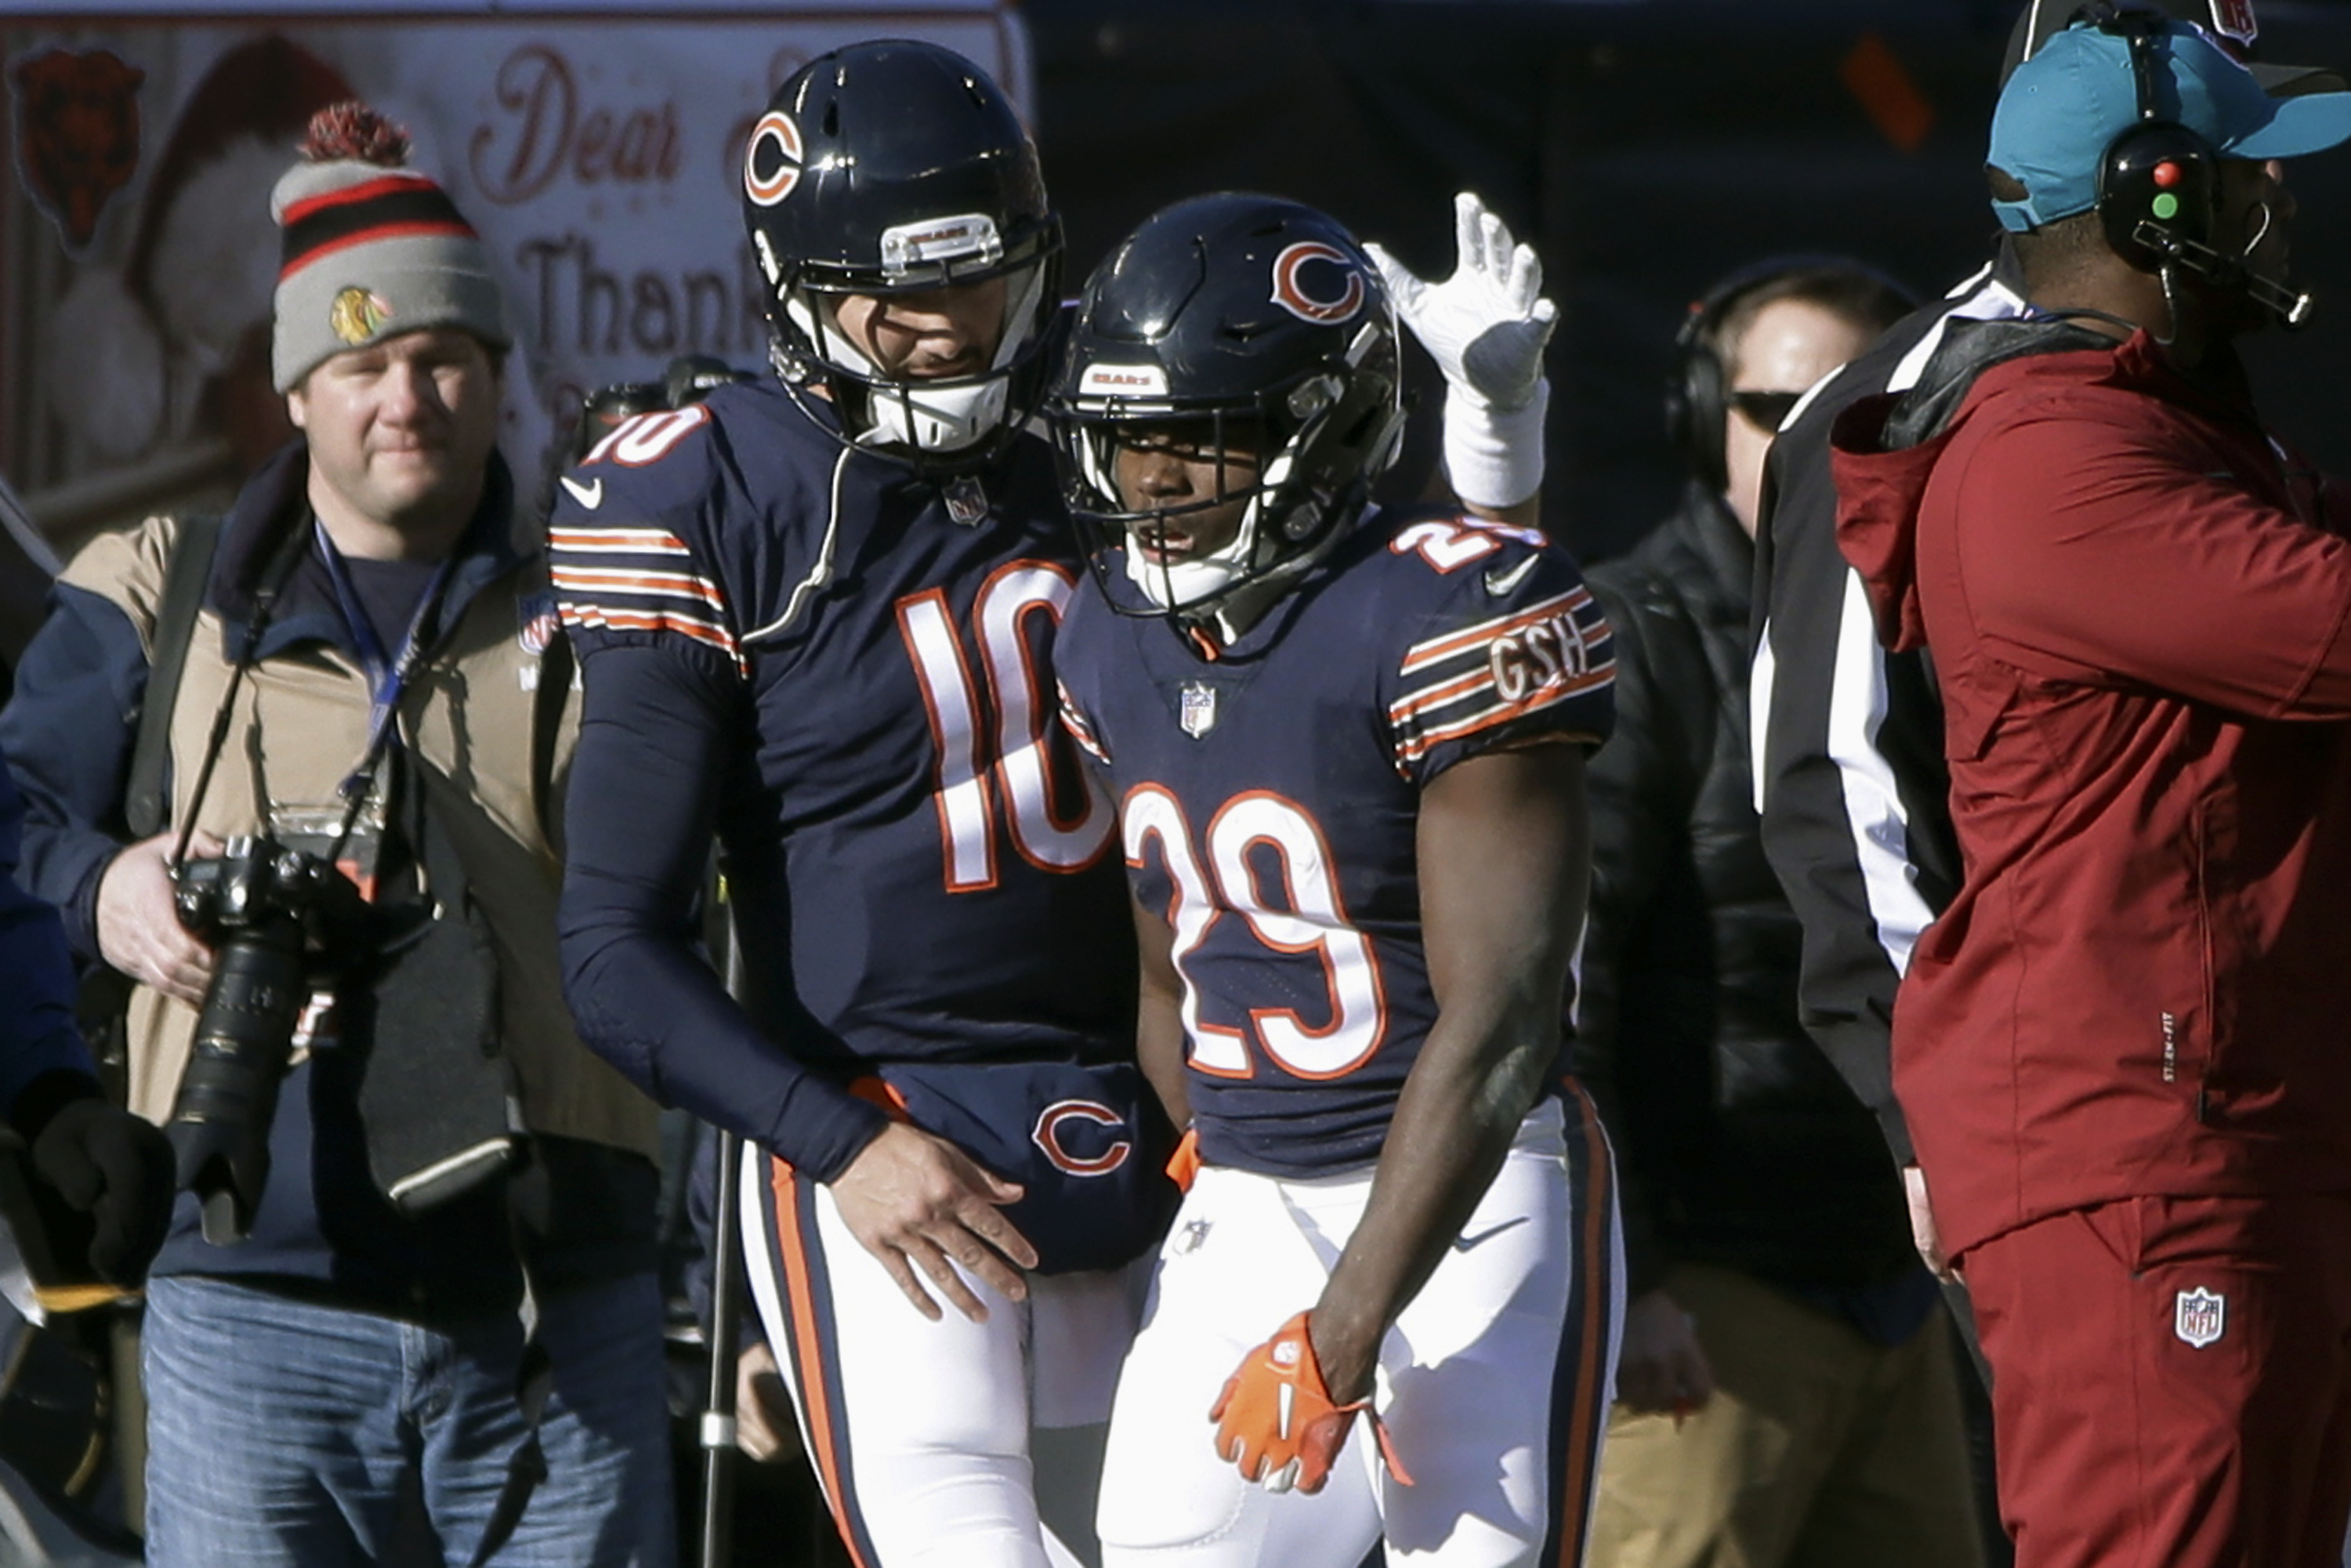 c9d72255 Bears beat Packers to clinch NFC North title - The Boston Globe